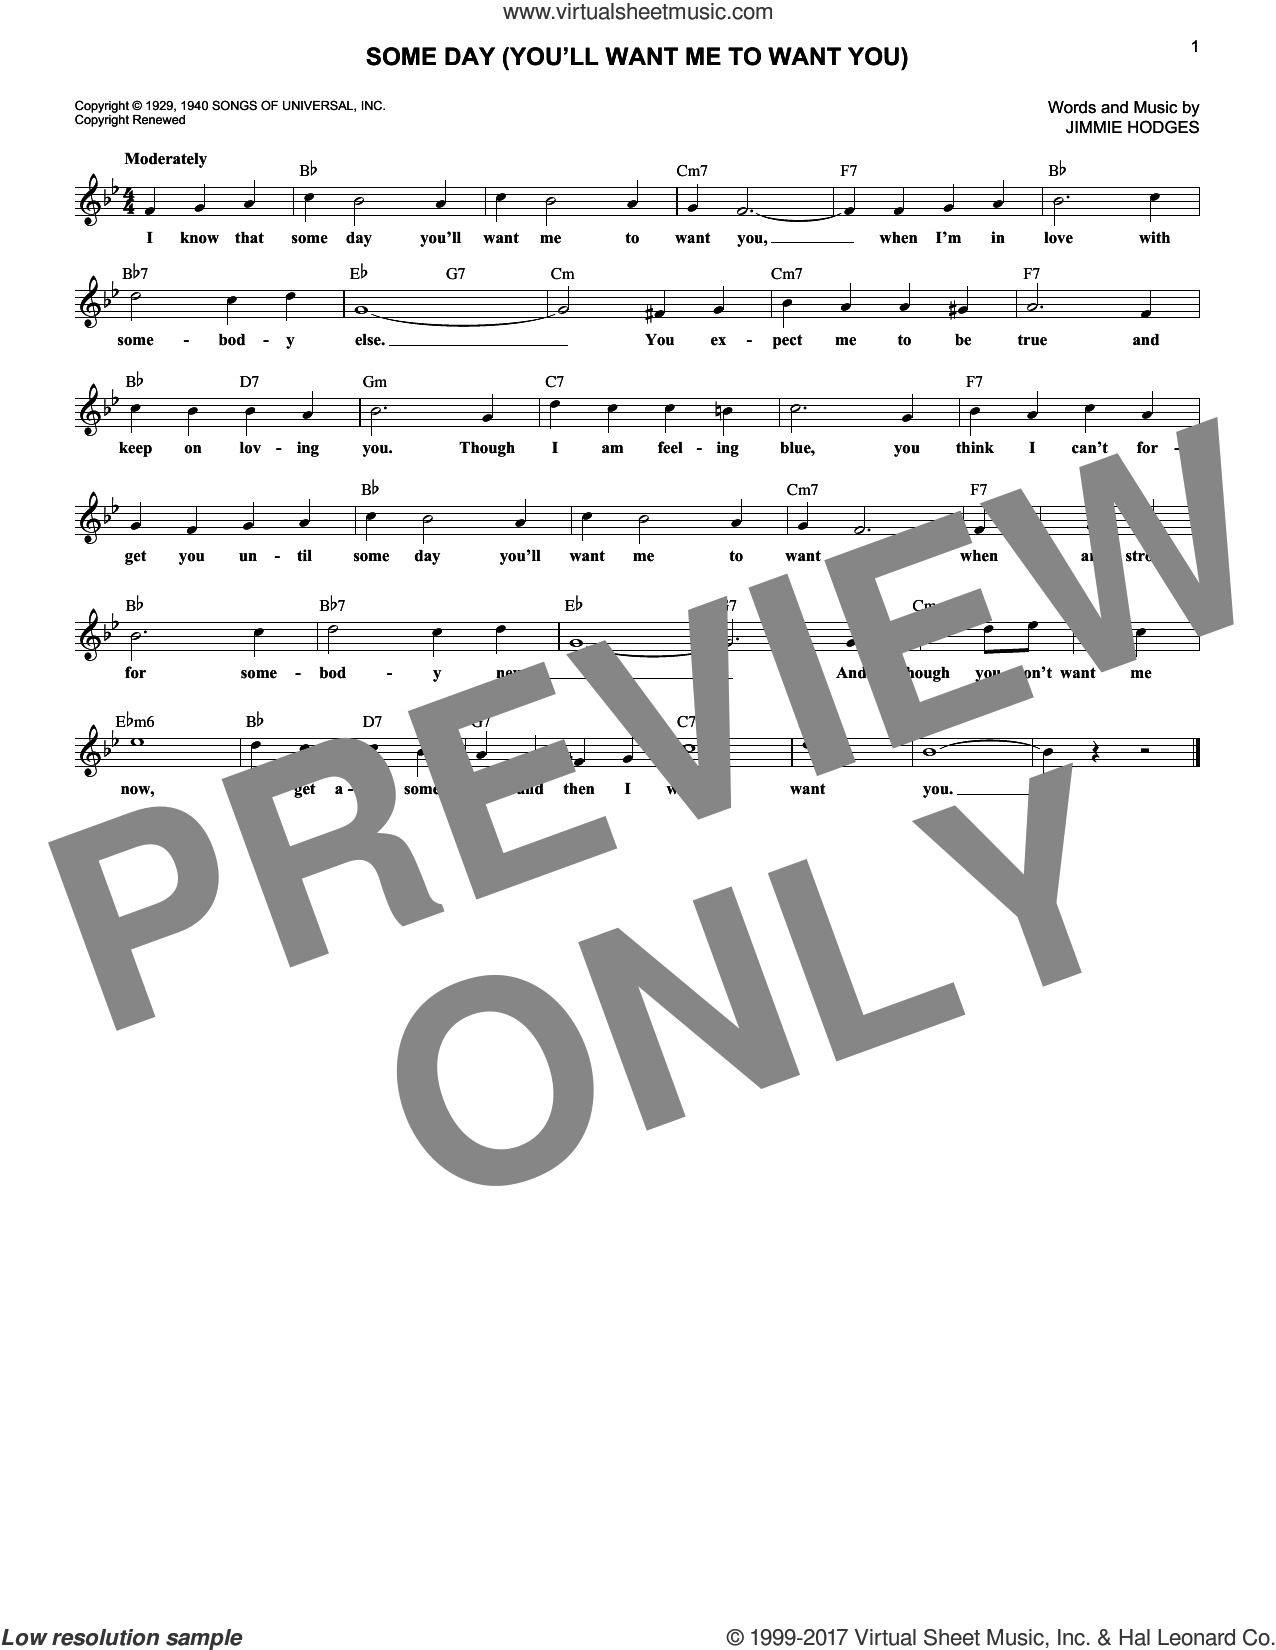 Some Day (You'll Want Me To Want You) sheet music for voice and other instruments (fake book) by The Mills Brothers, T.G. Sheppard and Jimmie Hodges, intermediate